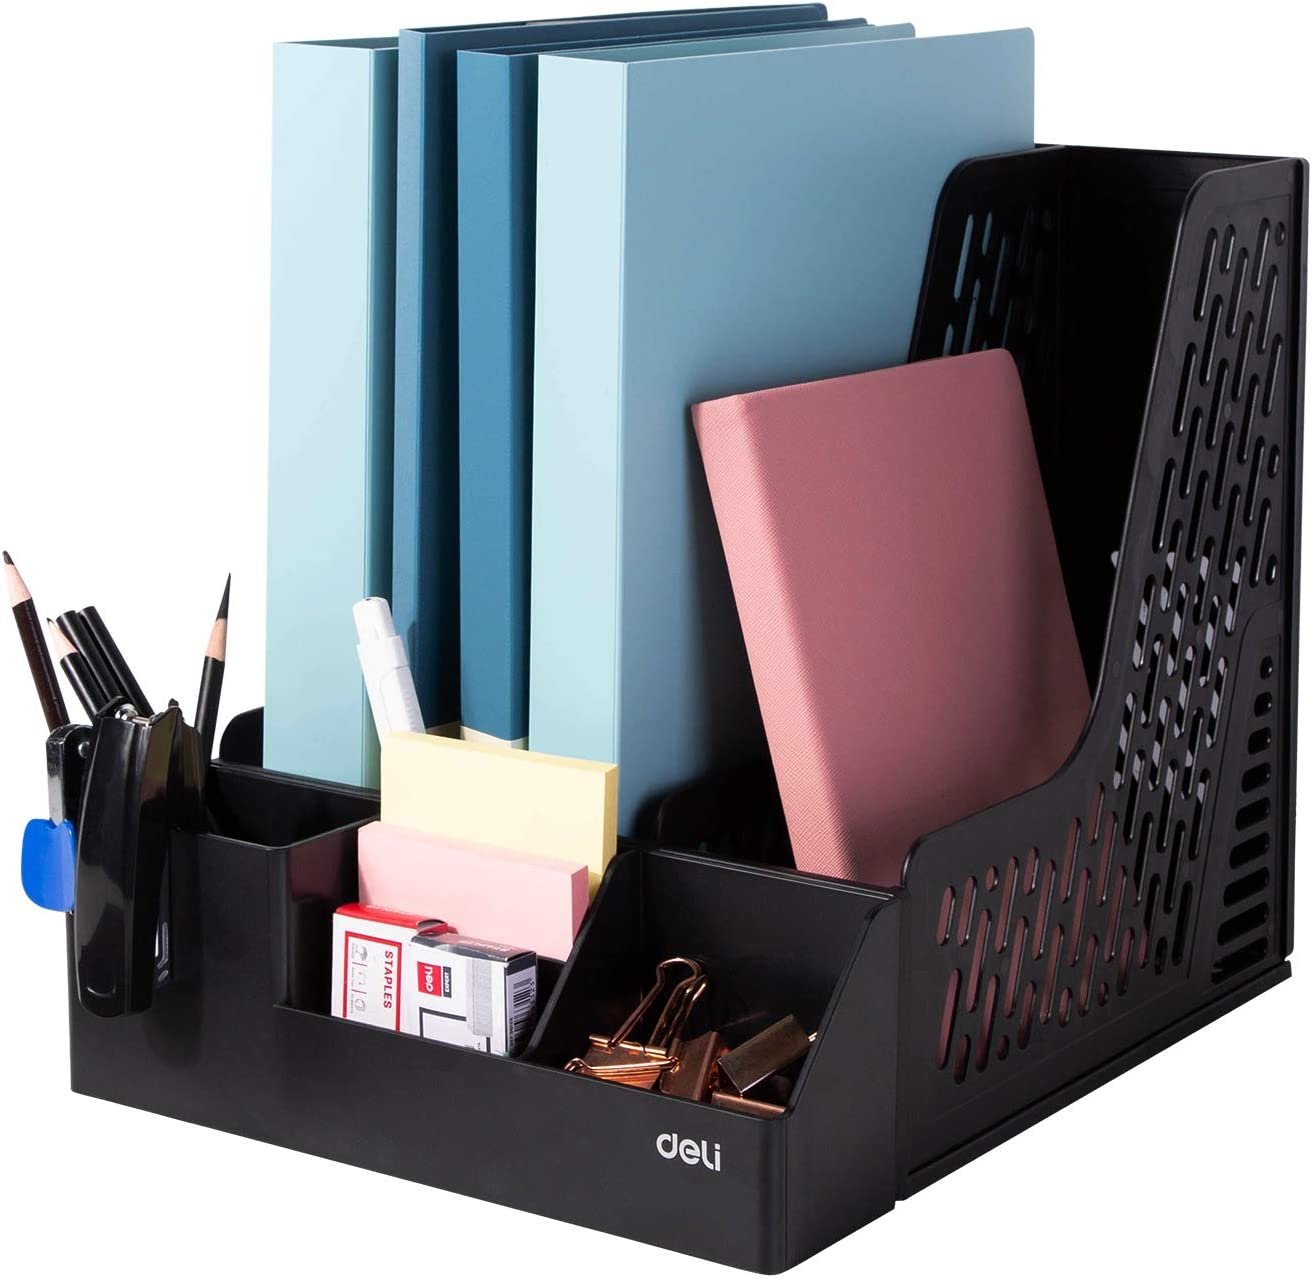 Deli Magazine File Book Holder Desktop Organizer Vertical Folder with Pencil Holder and Storage Baskets for Desk Accessories, 3 Compartments, Black : Office Products